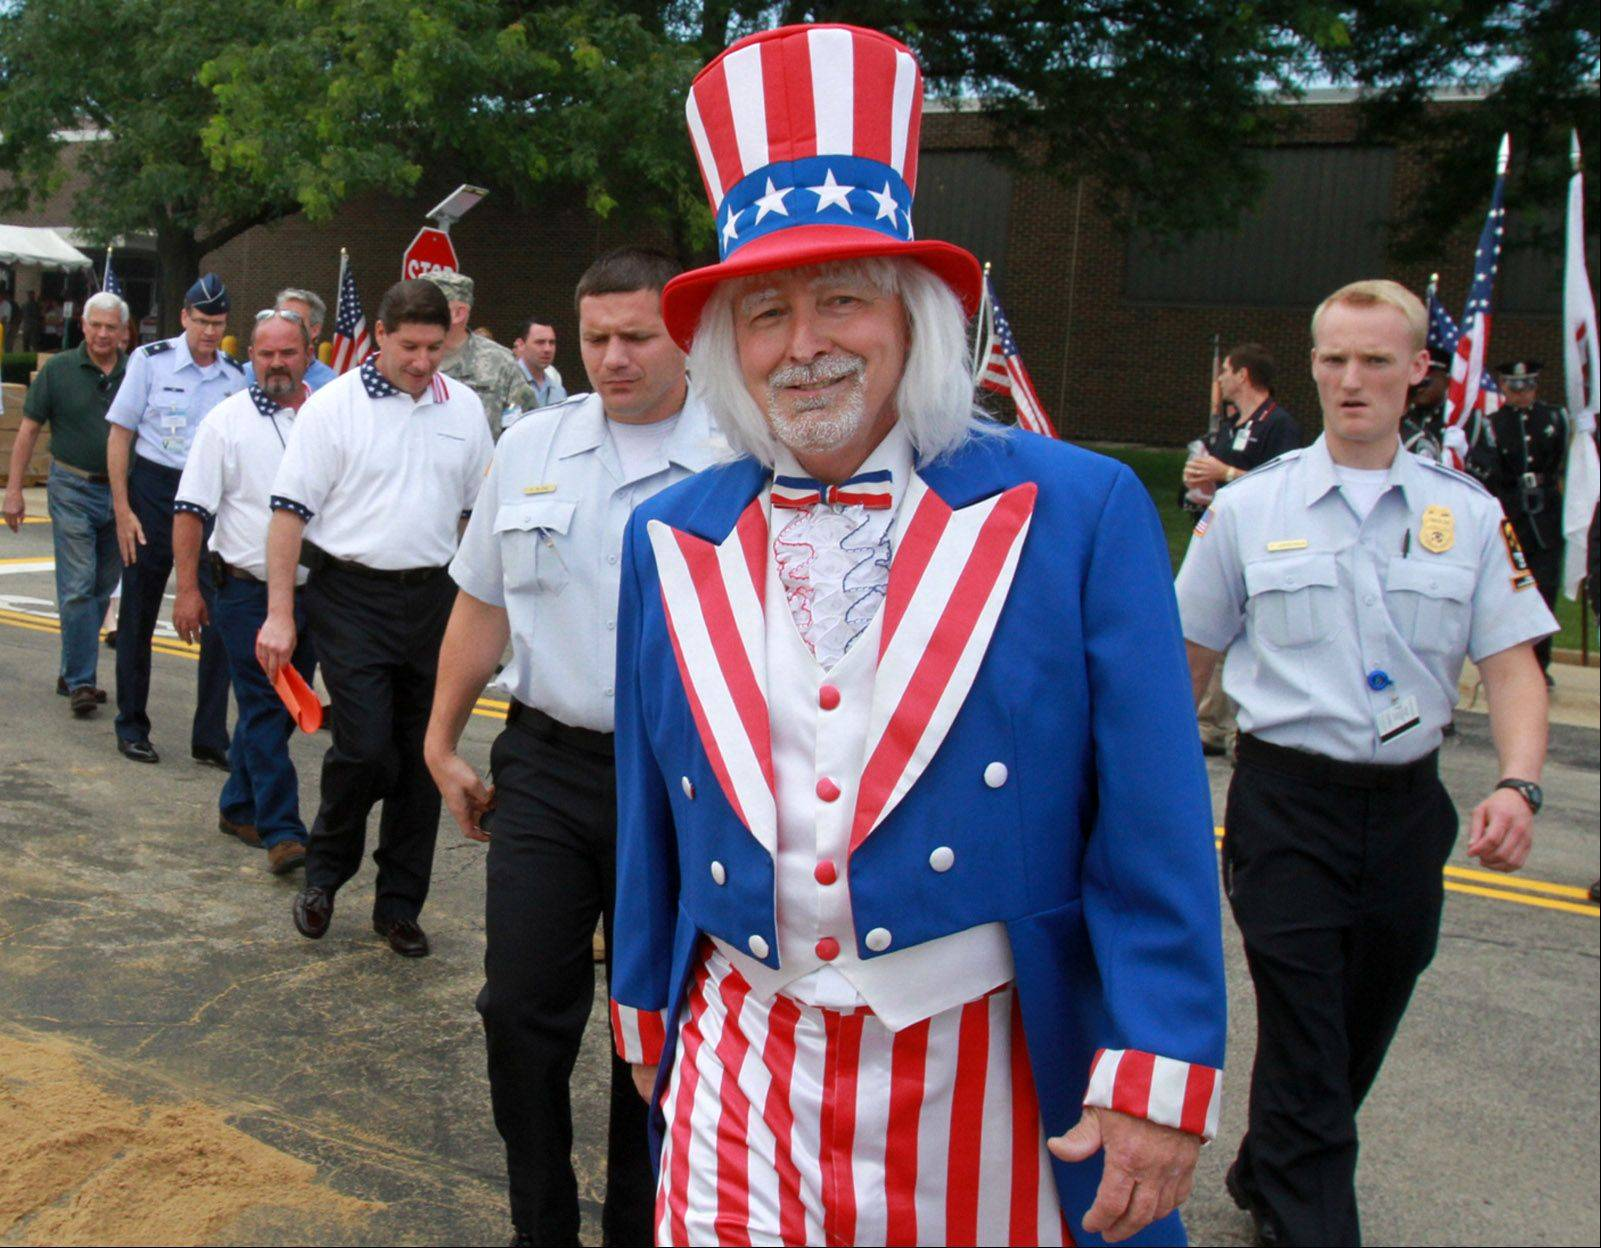 Joe Boshold, a manager at Northrop Grumman Corp., leads a parade of dignitaries as Uncle Sam to kick off festivities at the 20th annual America Day at the global security company�s Rolling Meadows campus.